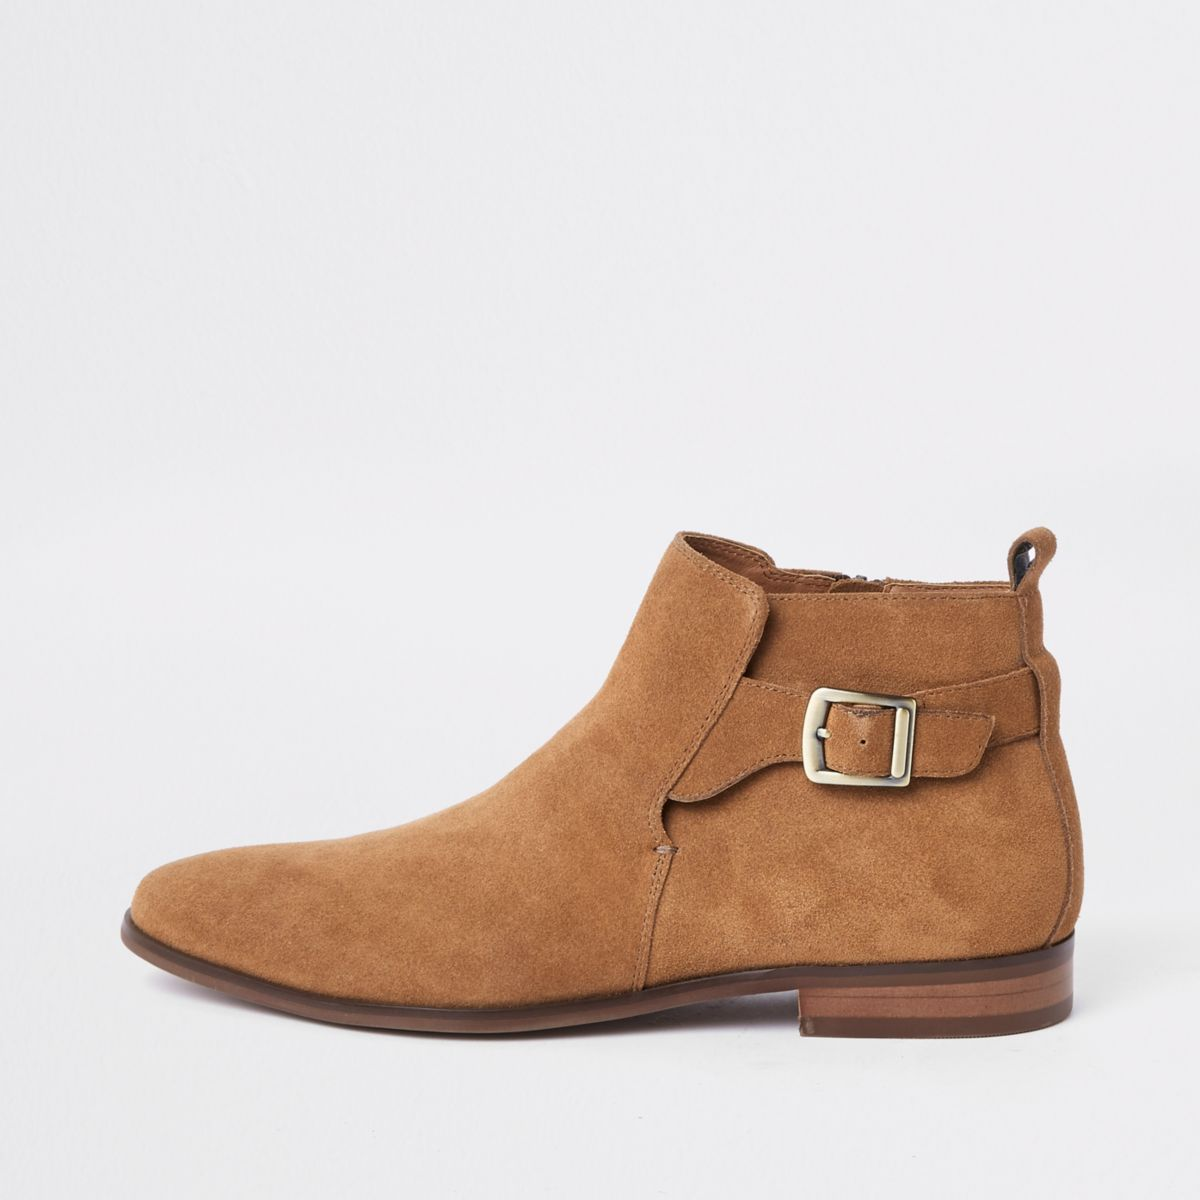 Tan suede buckle chelsea boots